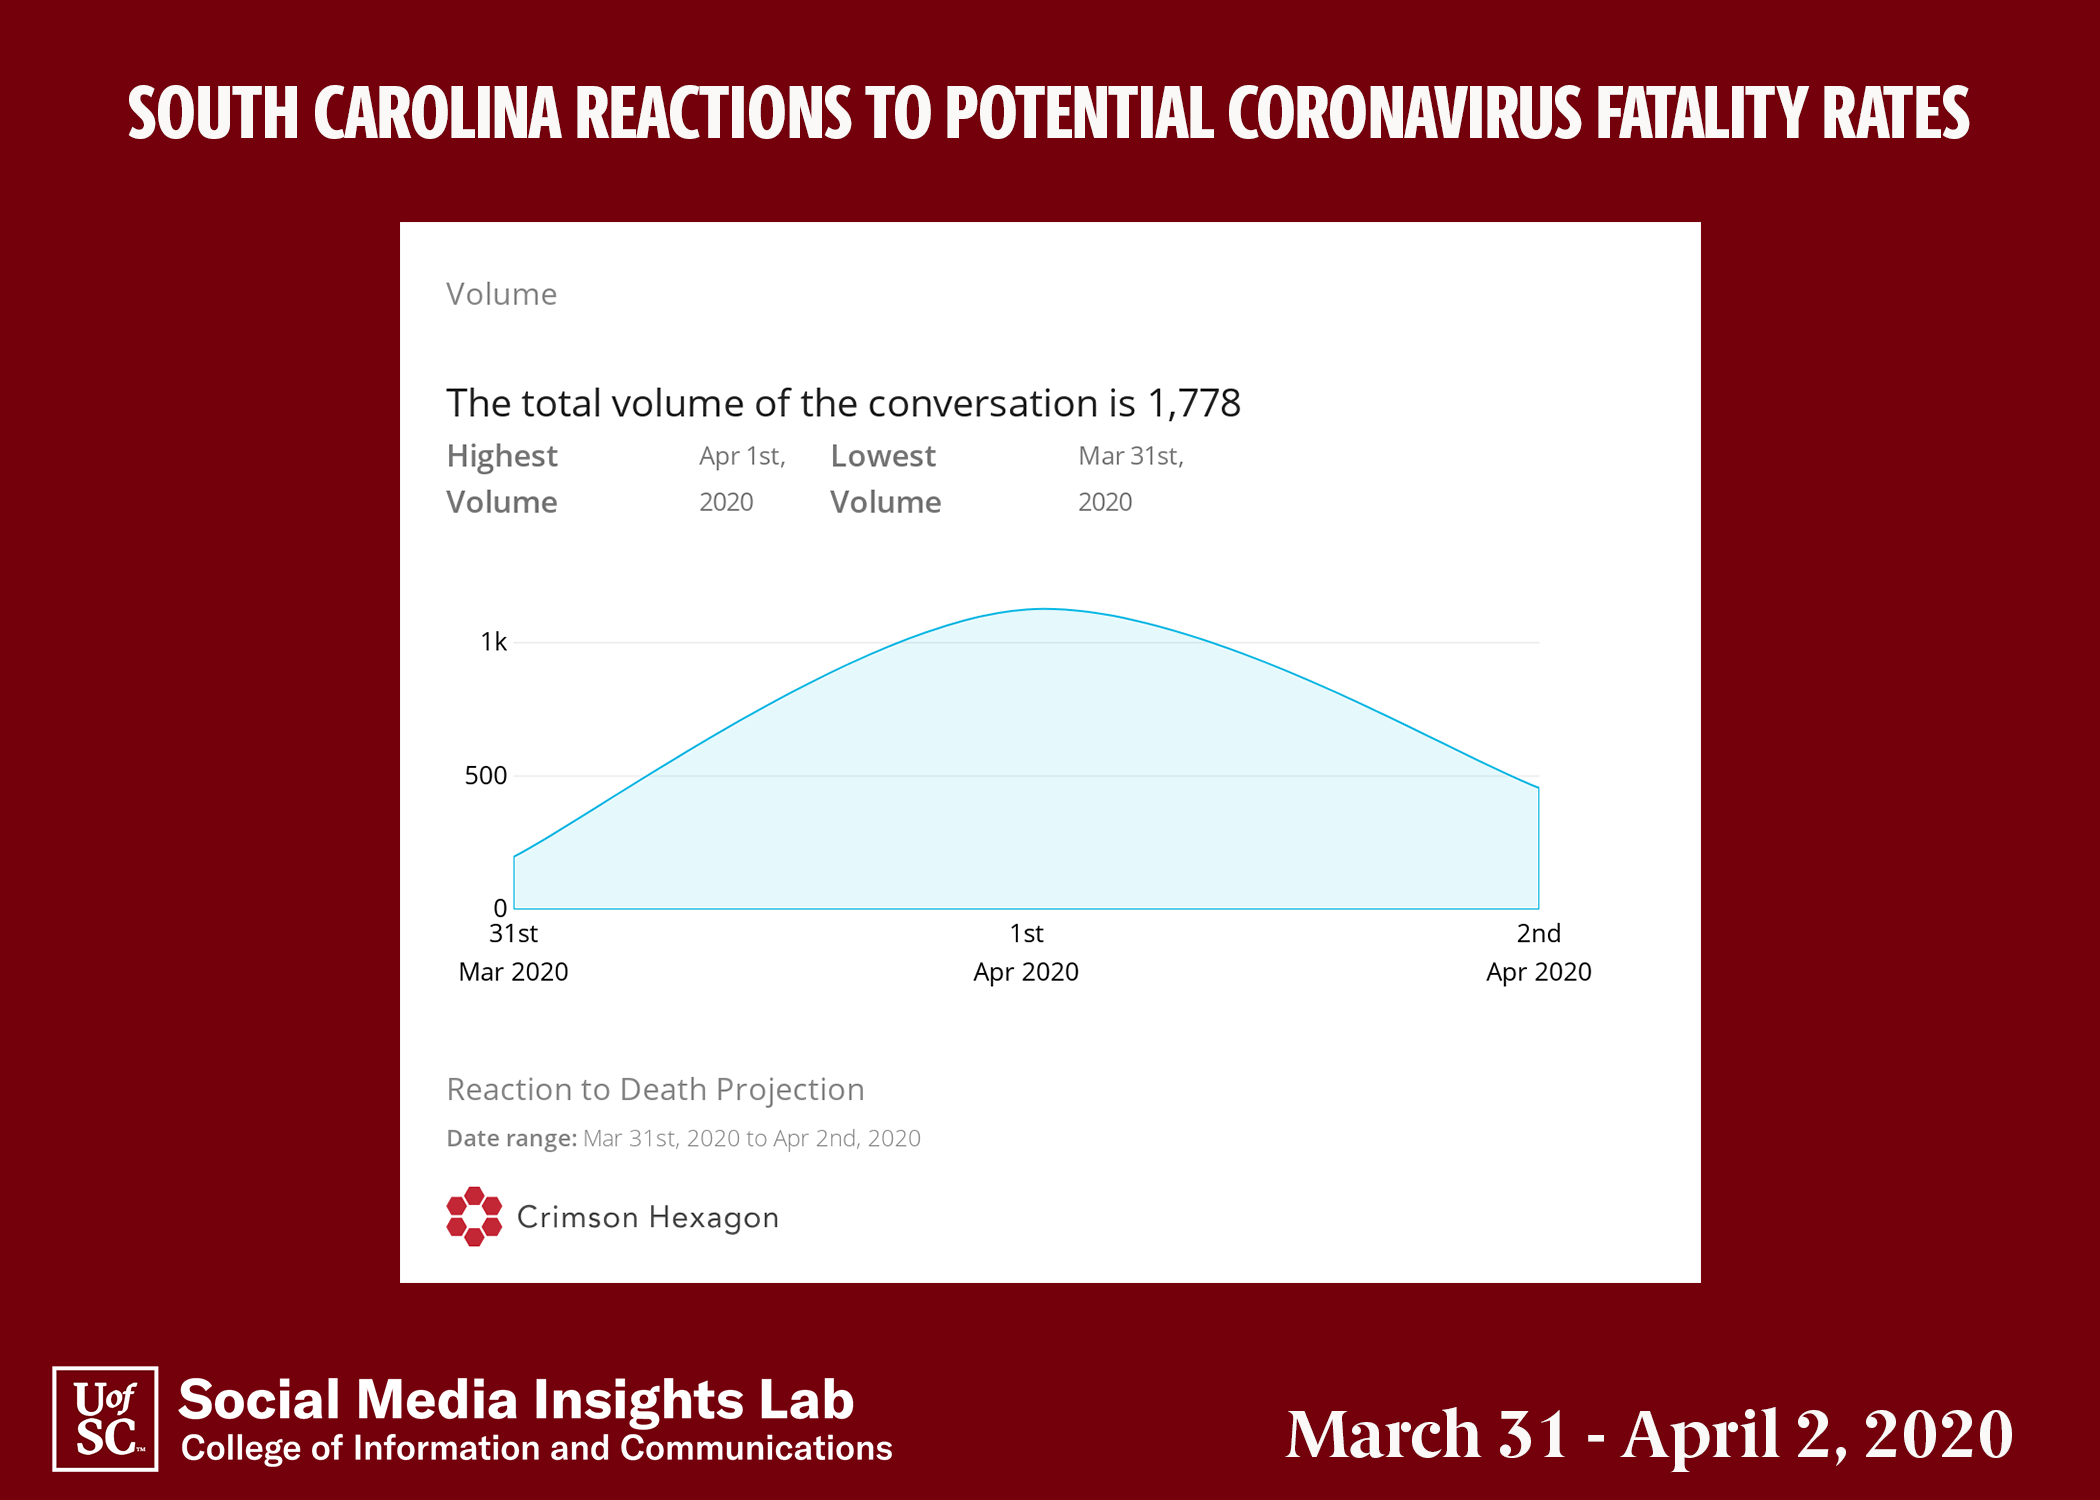 This chart shows the total volume of the conversation in reaction to the death projection from its lowest on March 31 to the highest on April 1.